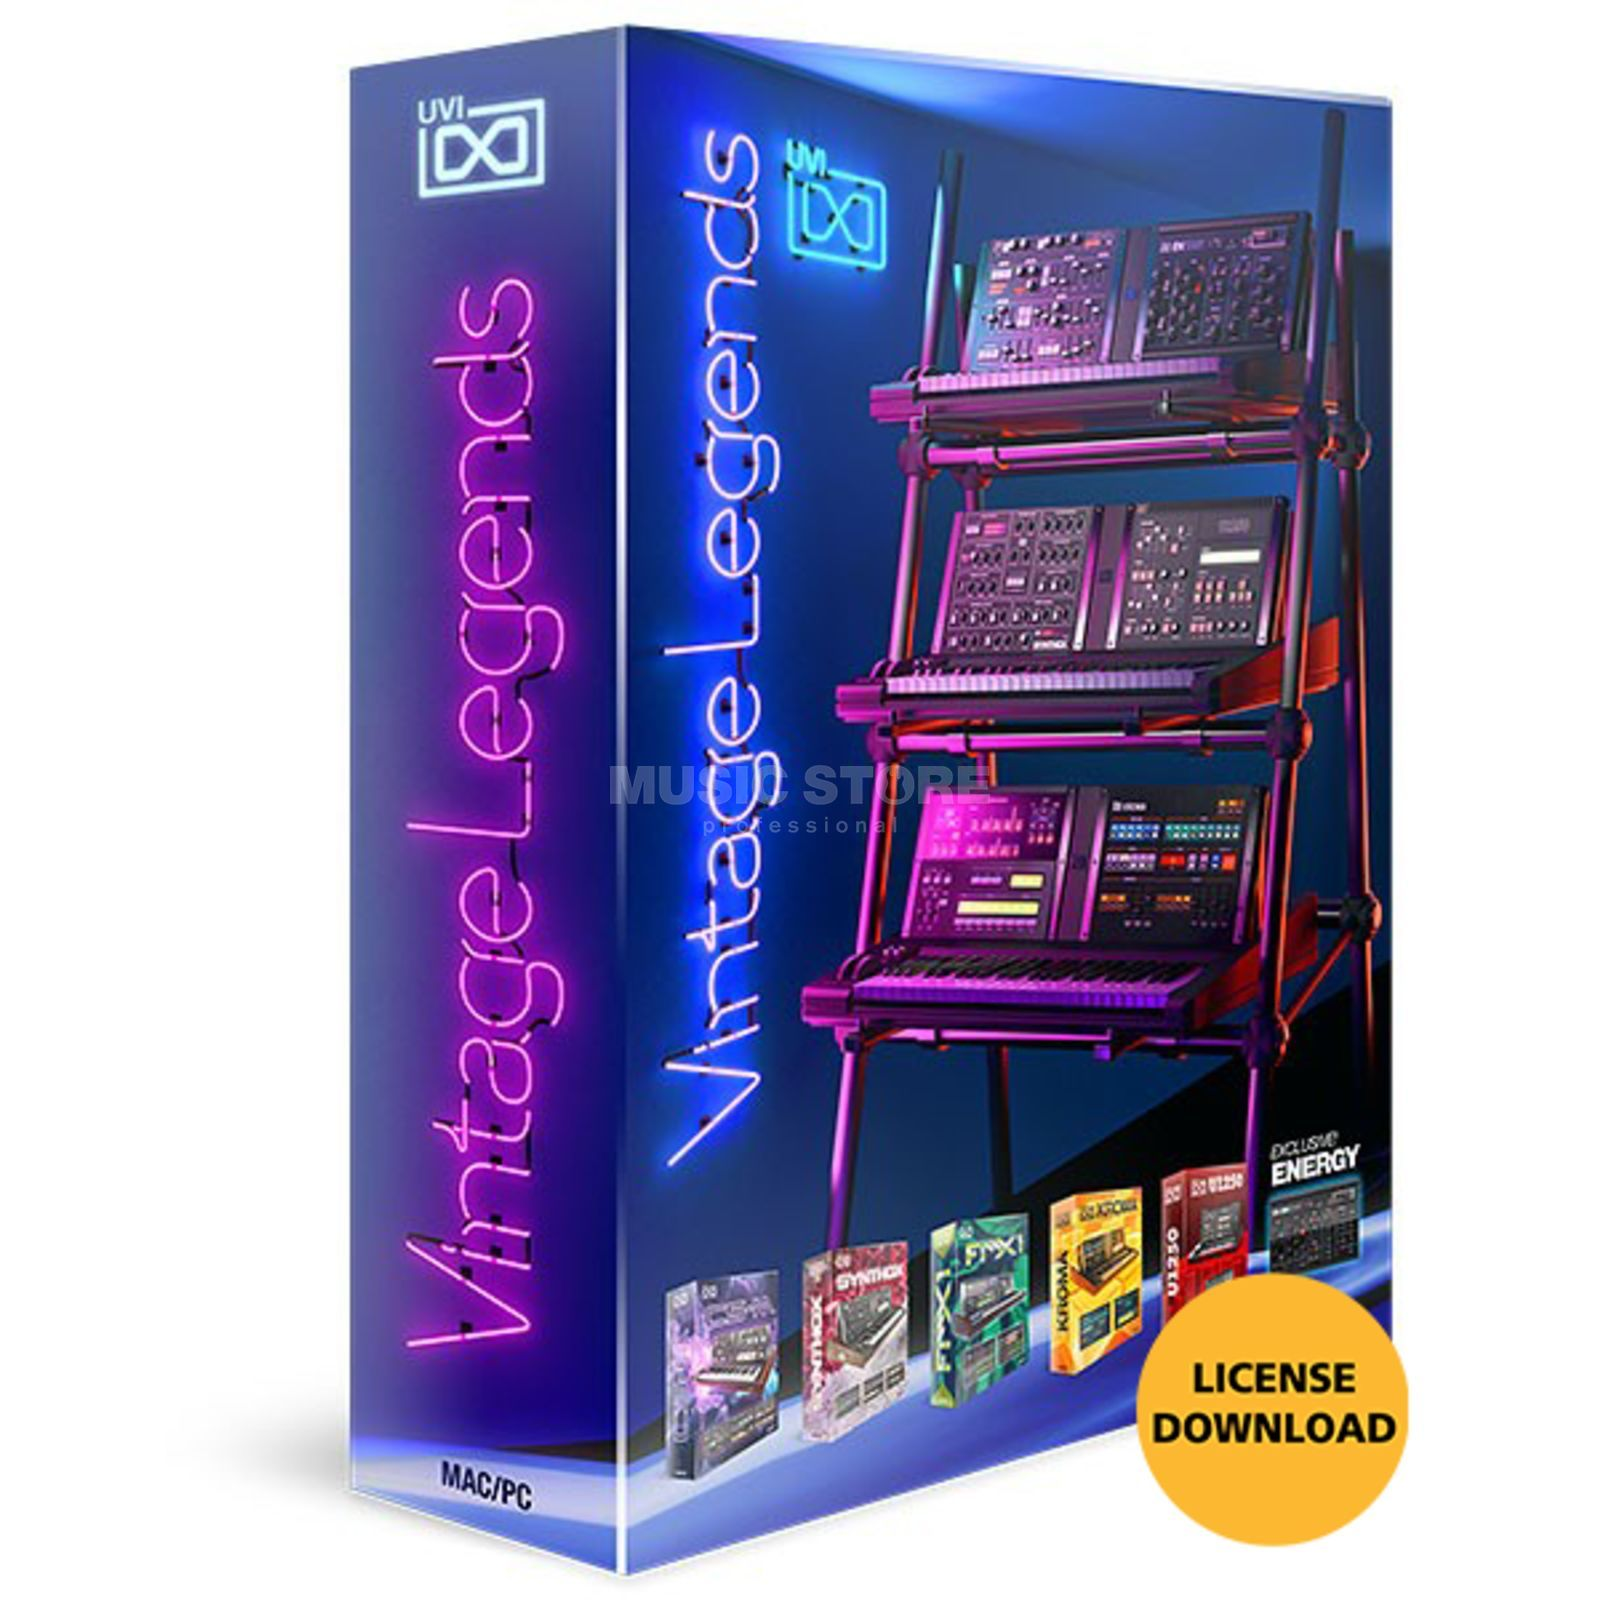 UVI Vintage Legends  (Lizenz) Software Instrument Produktbild